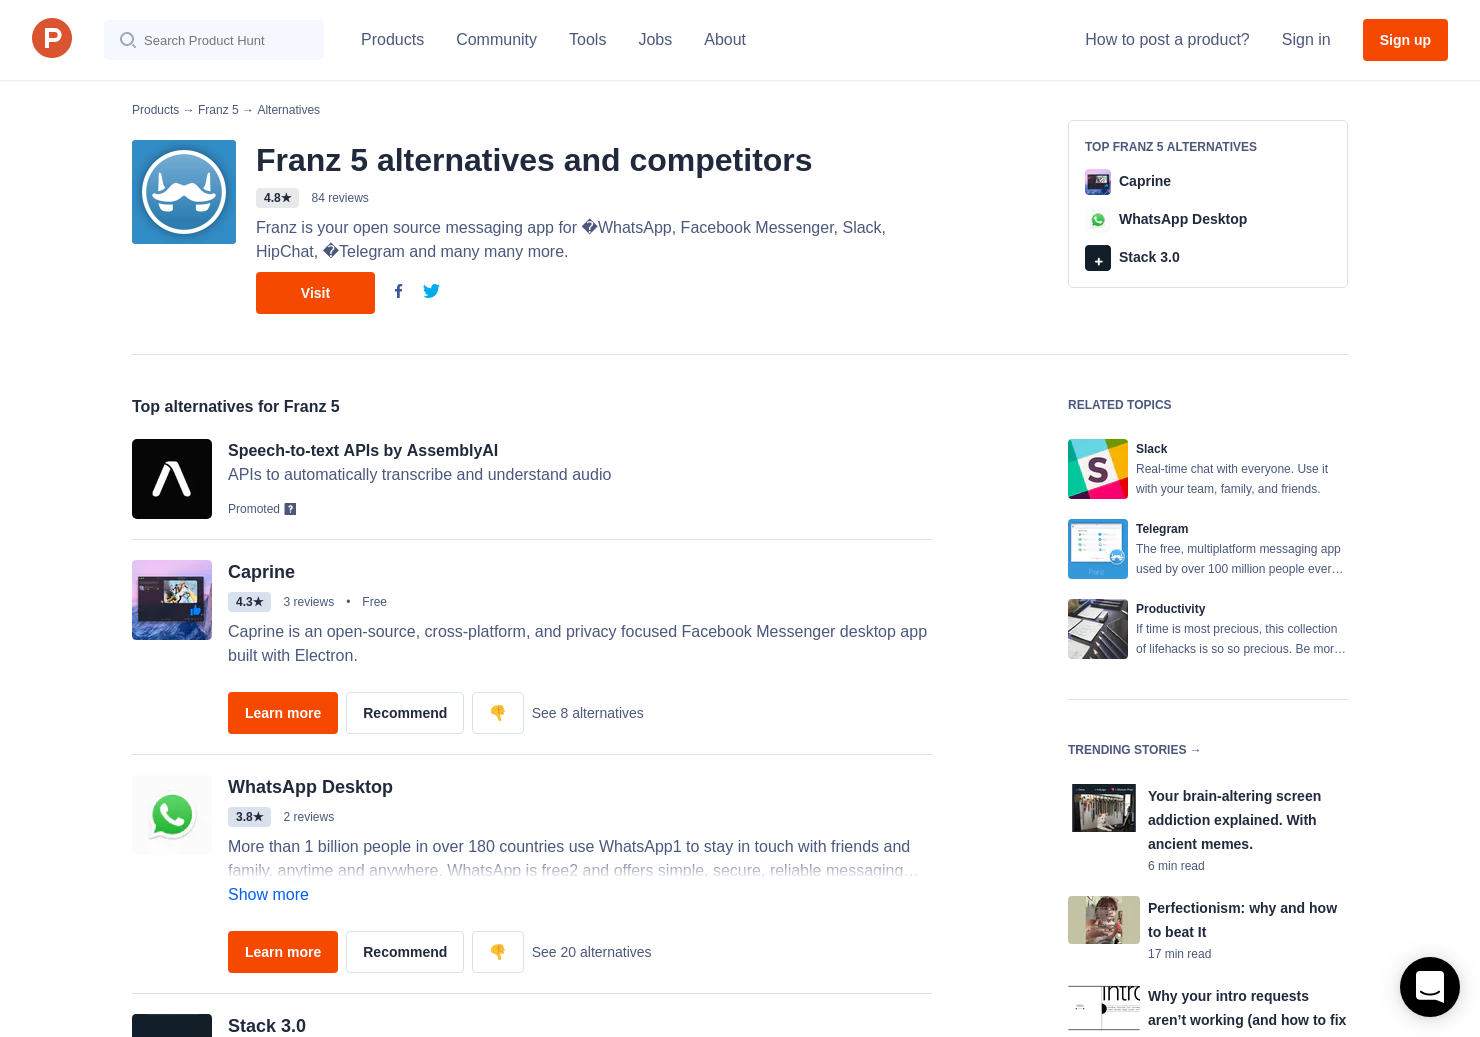 16 Alternatives to Franz 5 | Product Hunt